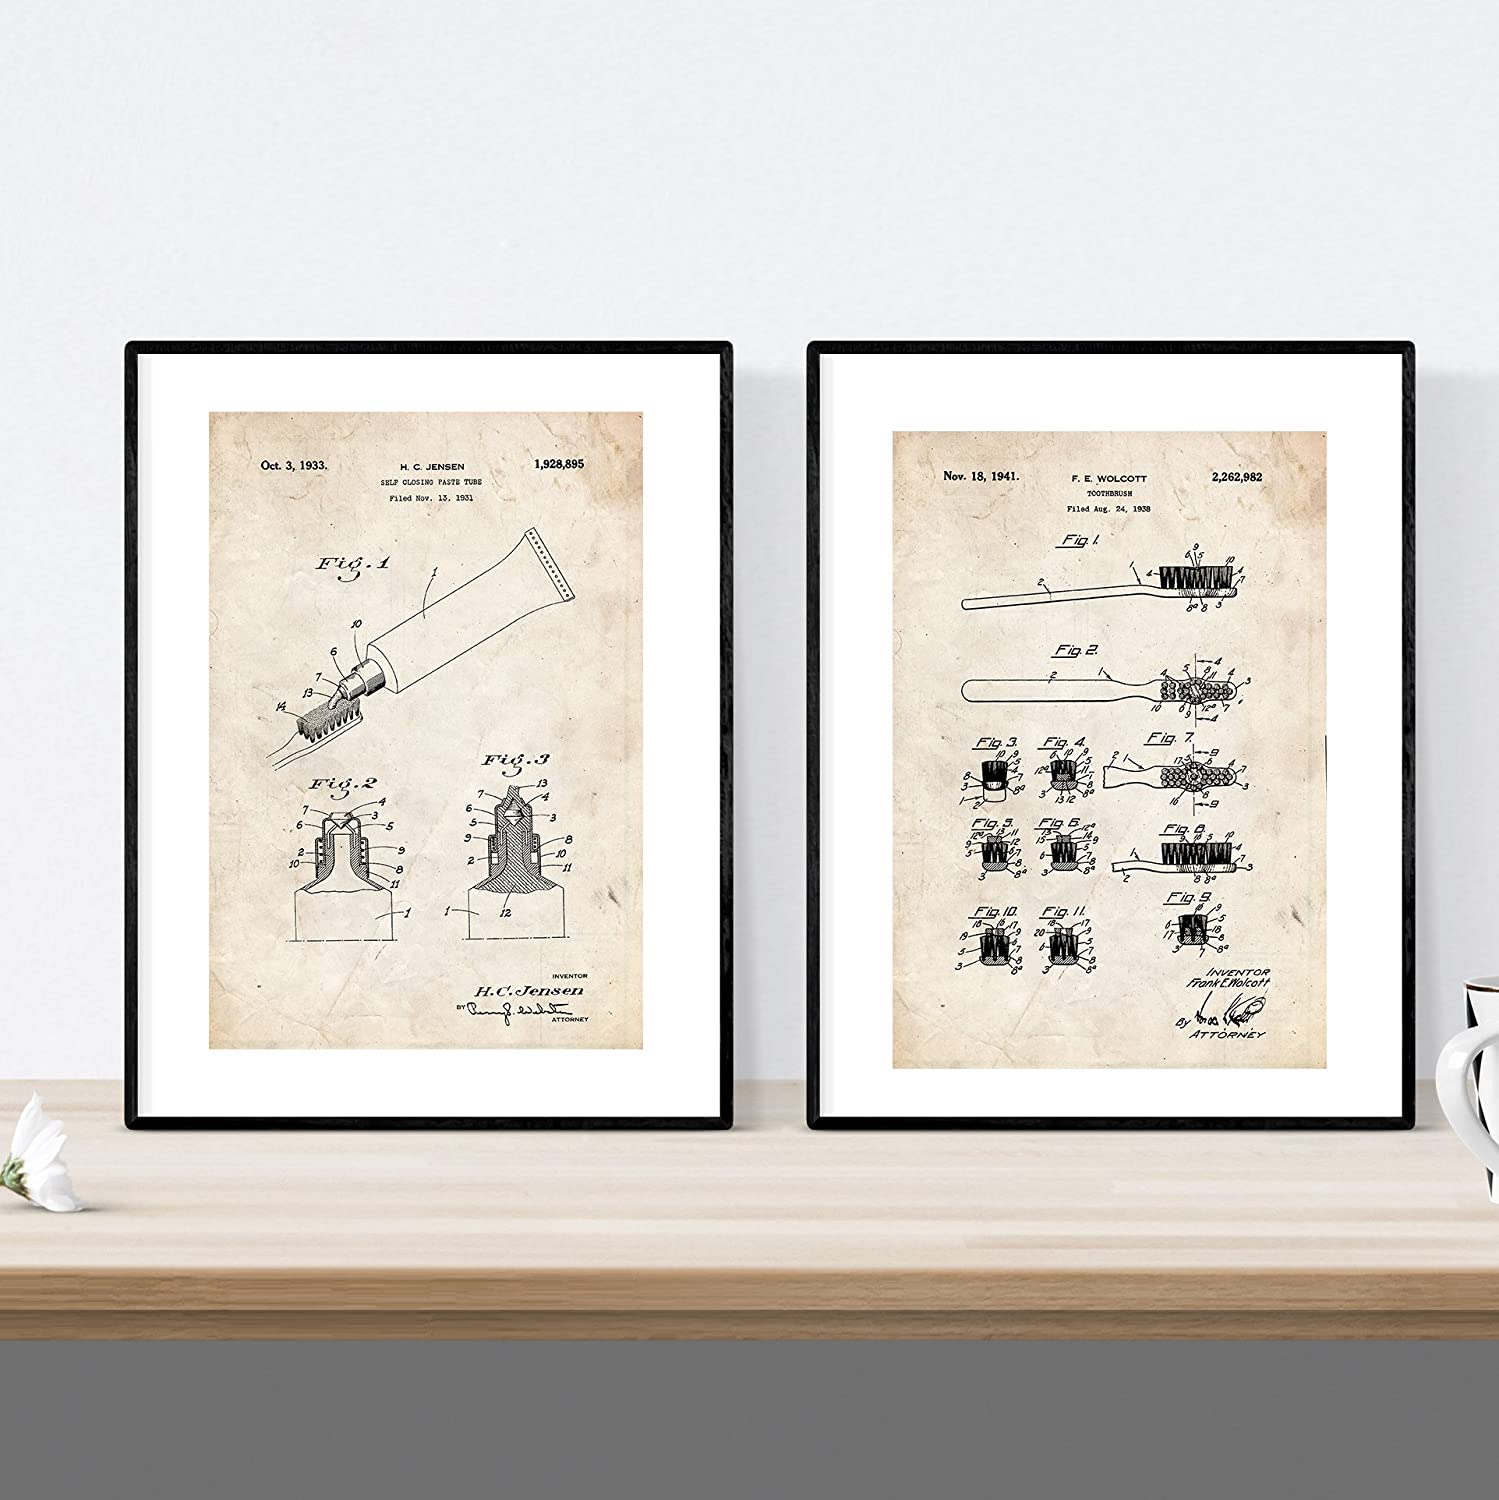 Nacnic Prints Vintage Patents Toothbrush & Toothpaste - Set of 2 - Unframed 8x11 inch Size - 250g Paper - Beautiful Poster Painting for Home Office Living Room